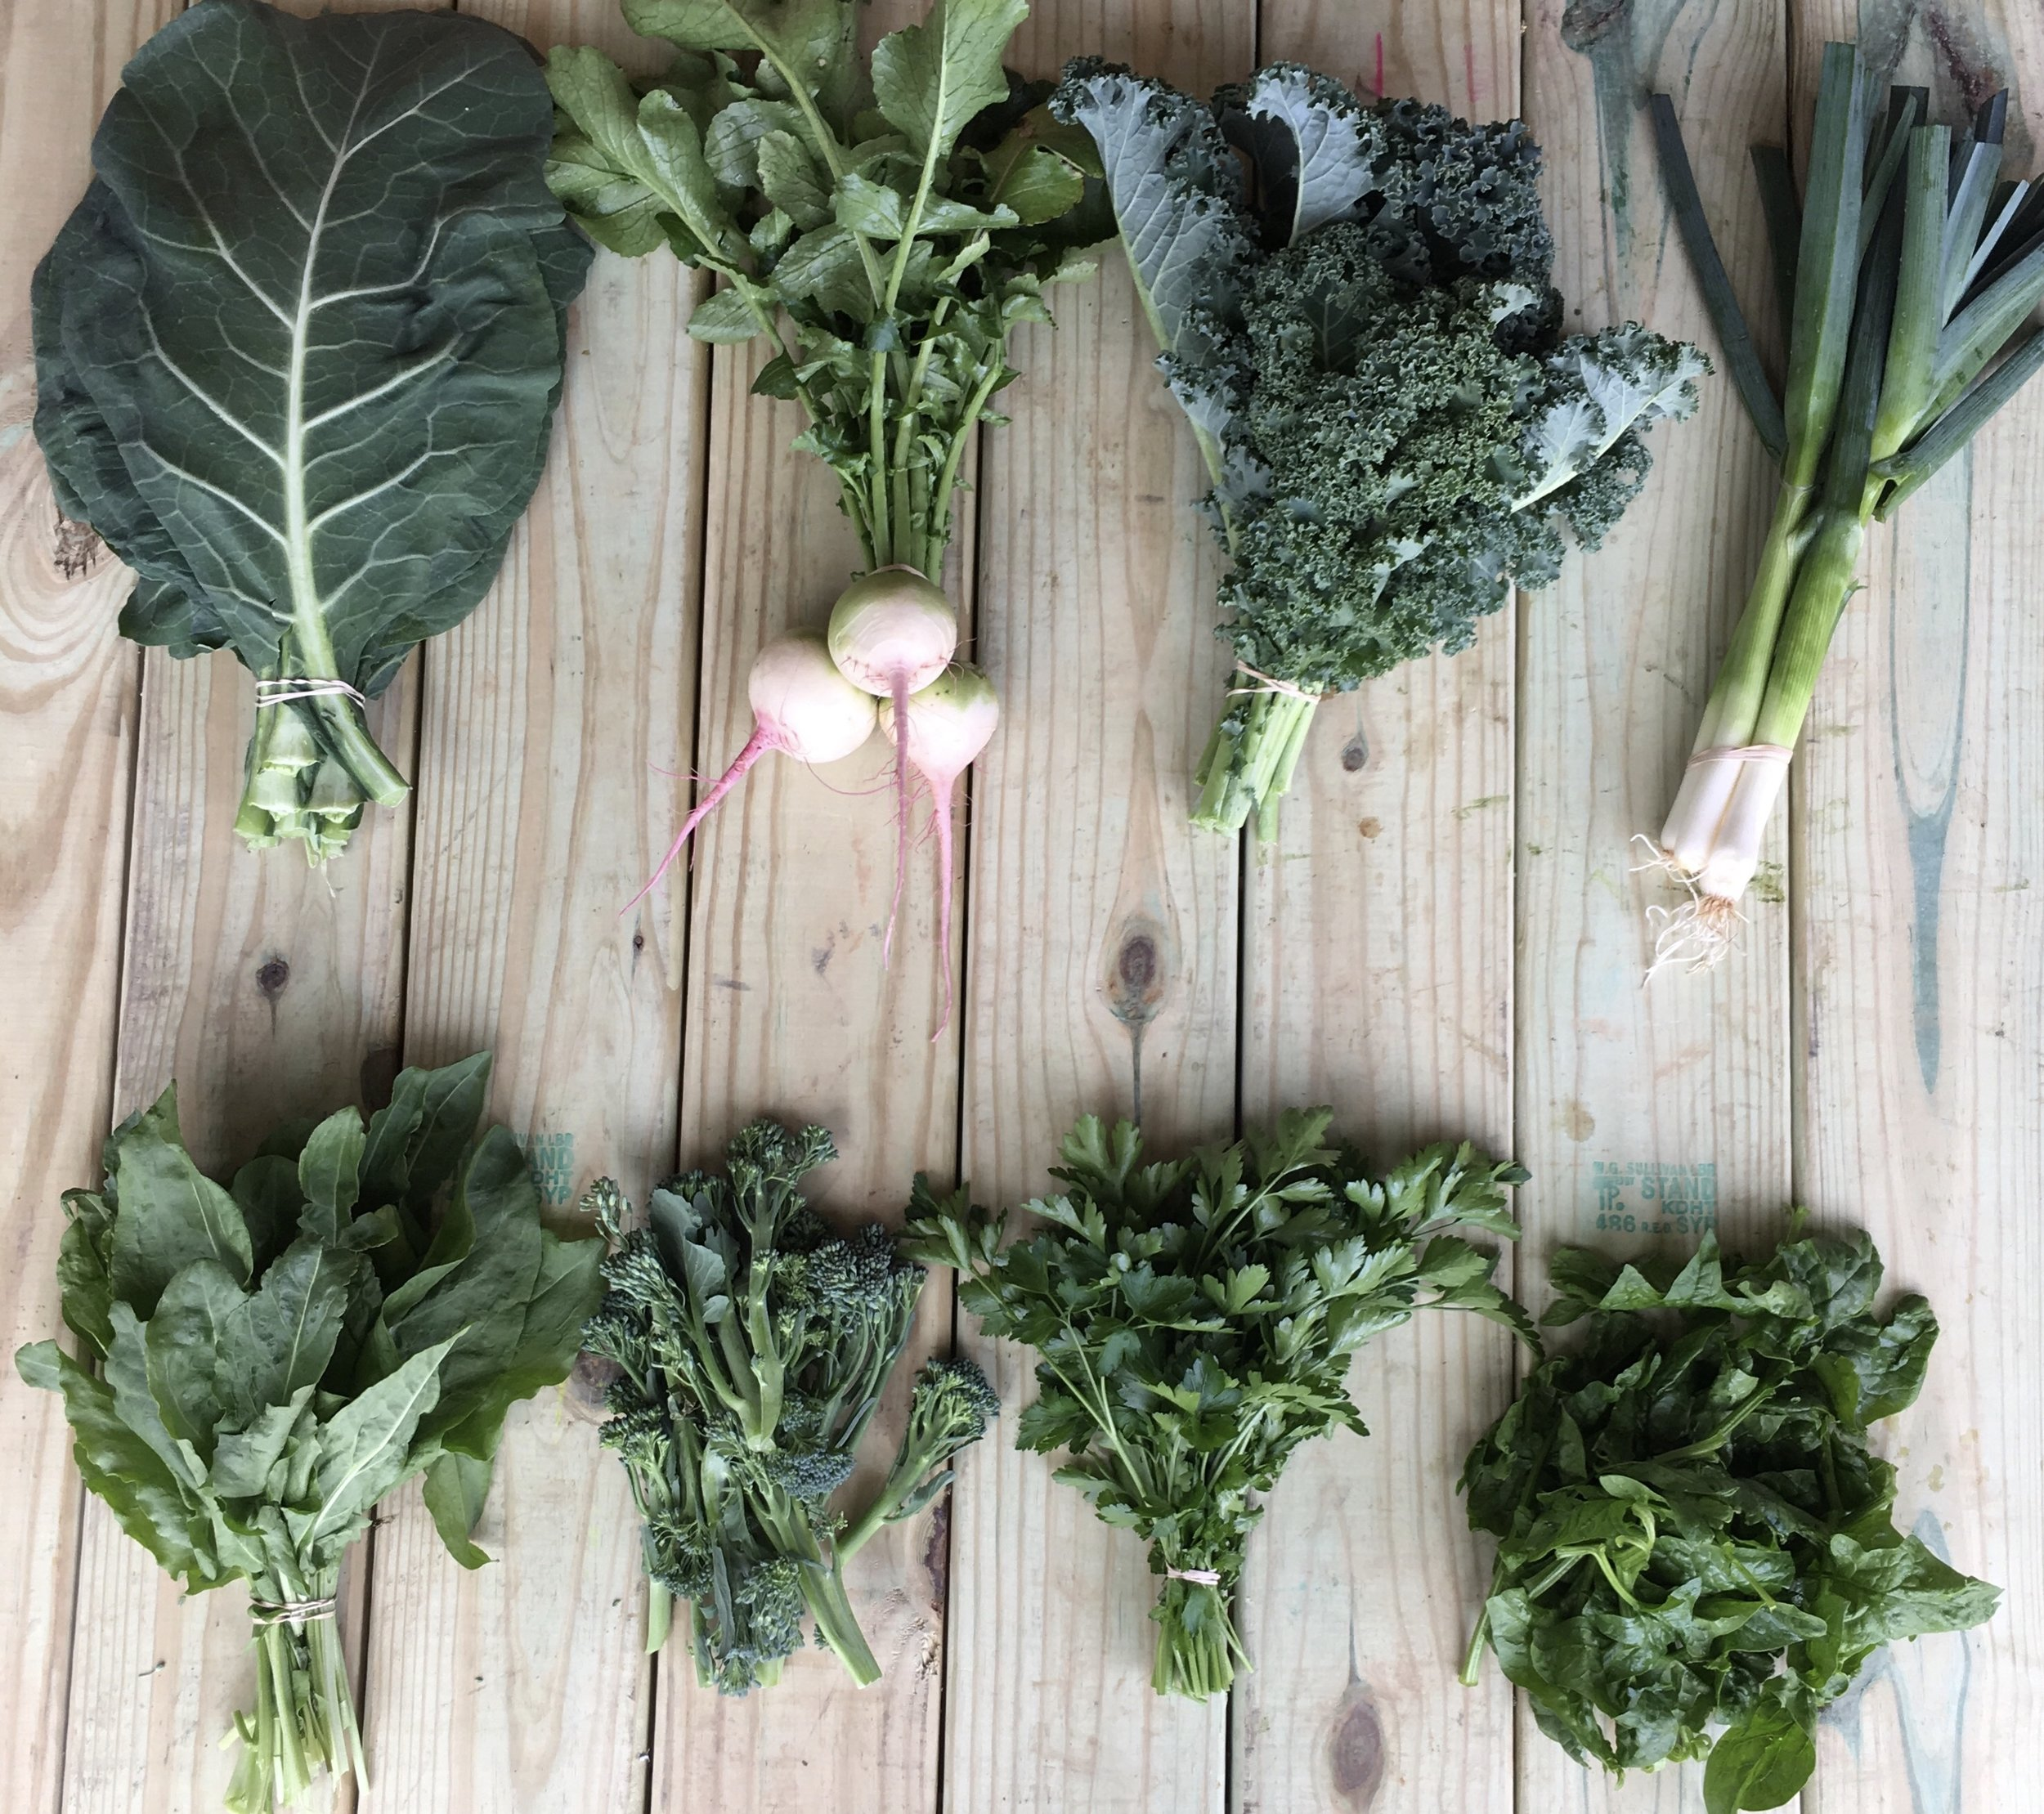 Top row left to right: Collards, Watermelon Radishes, Curly Kale, and Leeks  Bottom row left to right: Sorrel, Broccolini, Parsley, and Spinach